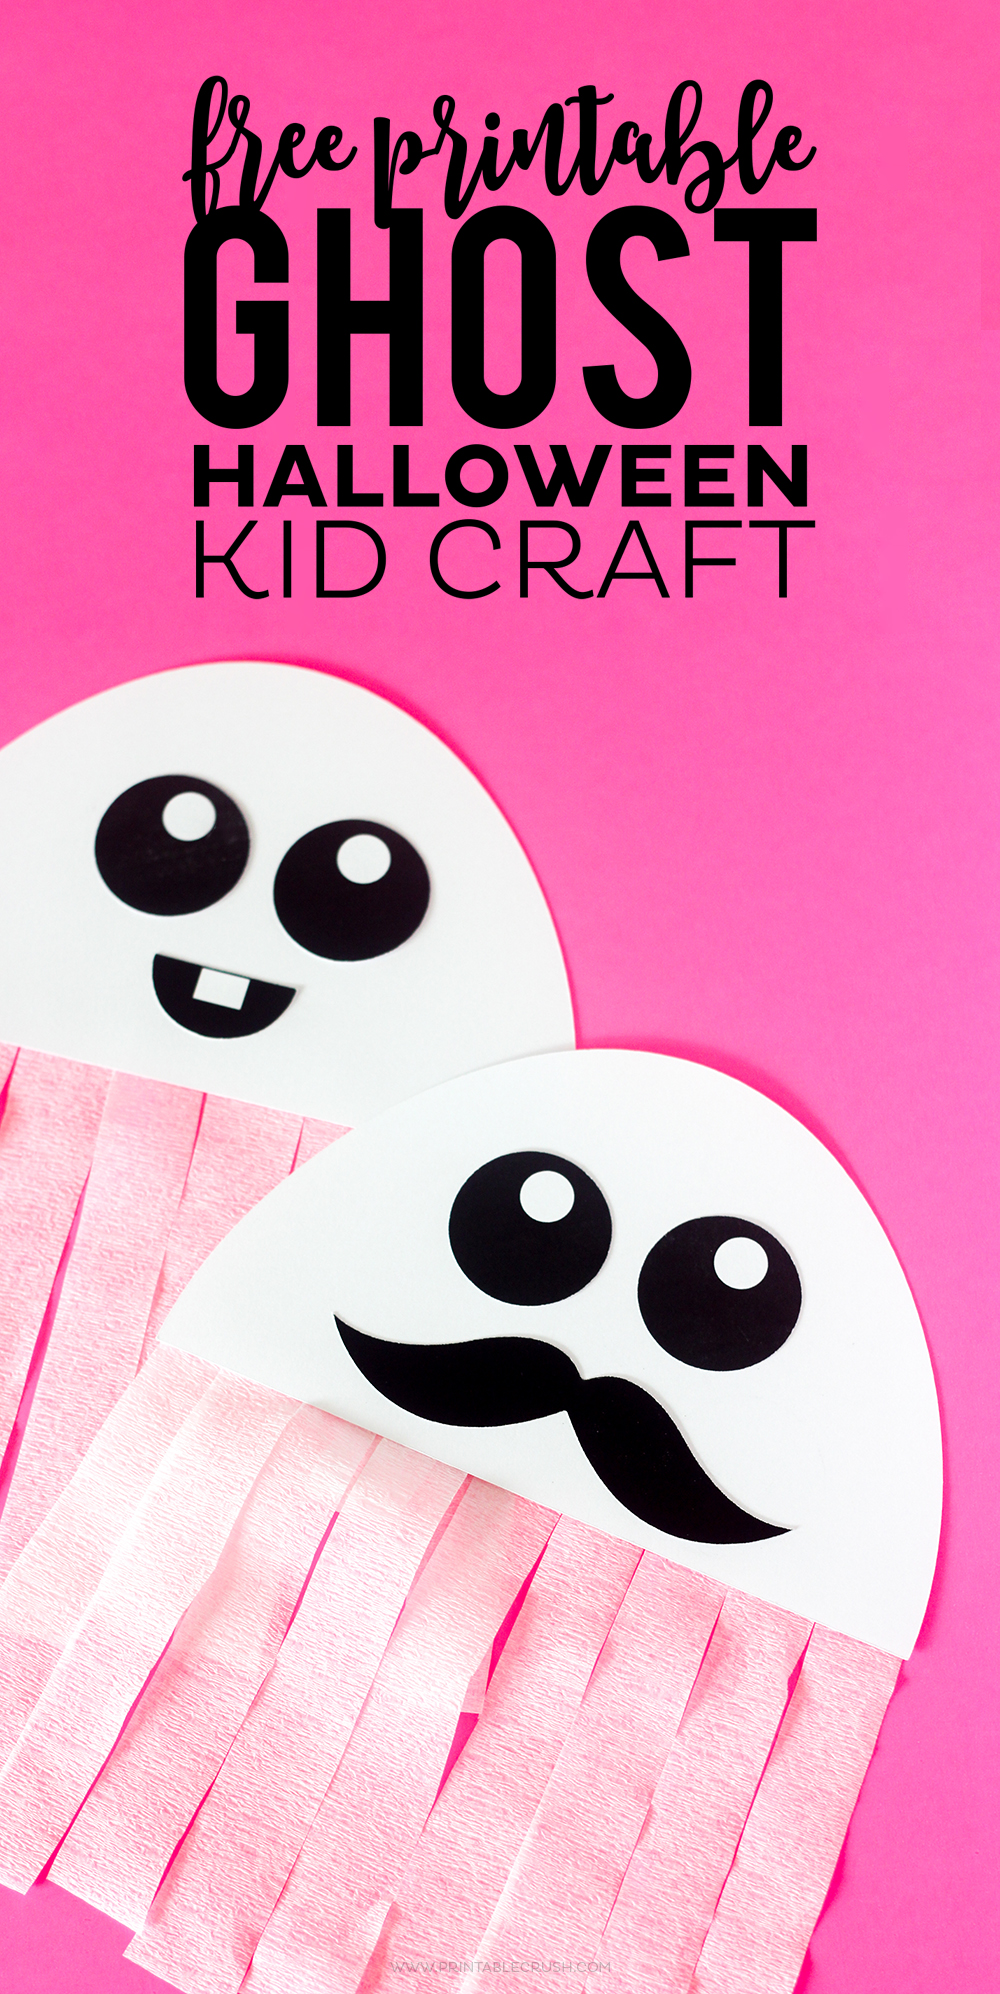 image regarding Halloween Craft Printable referred to as Free of charge Printable Ghost Halloween Craft - Printable Crush